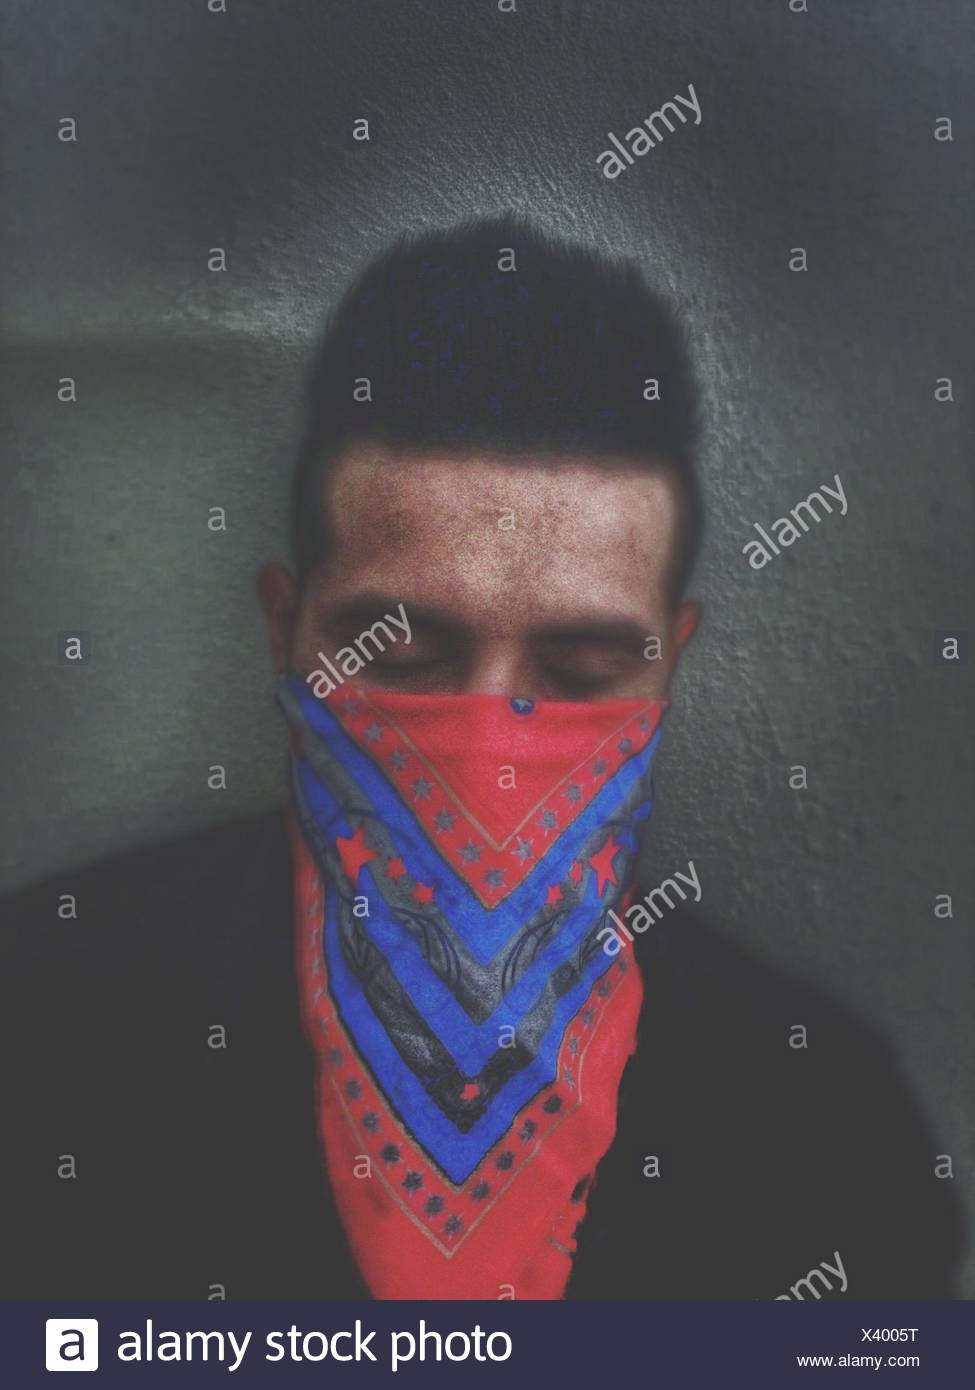 Front View Of Man With Handkerchief On Face - Stock Image